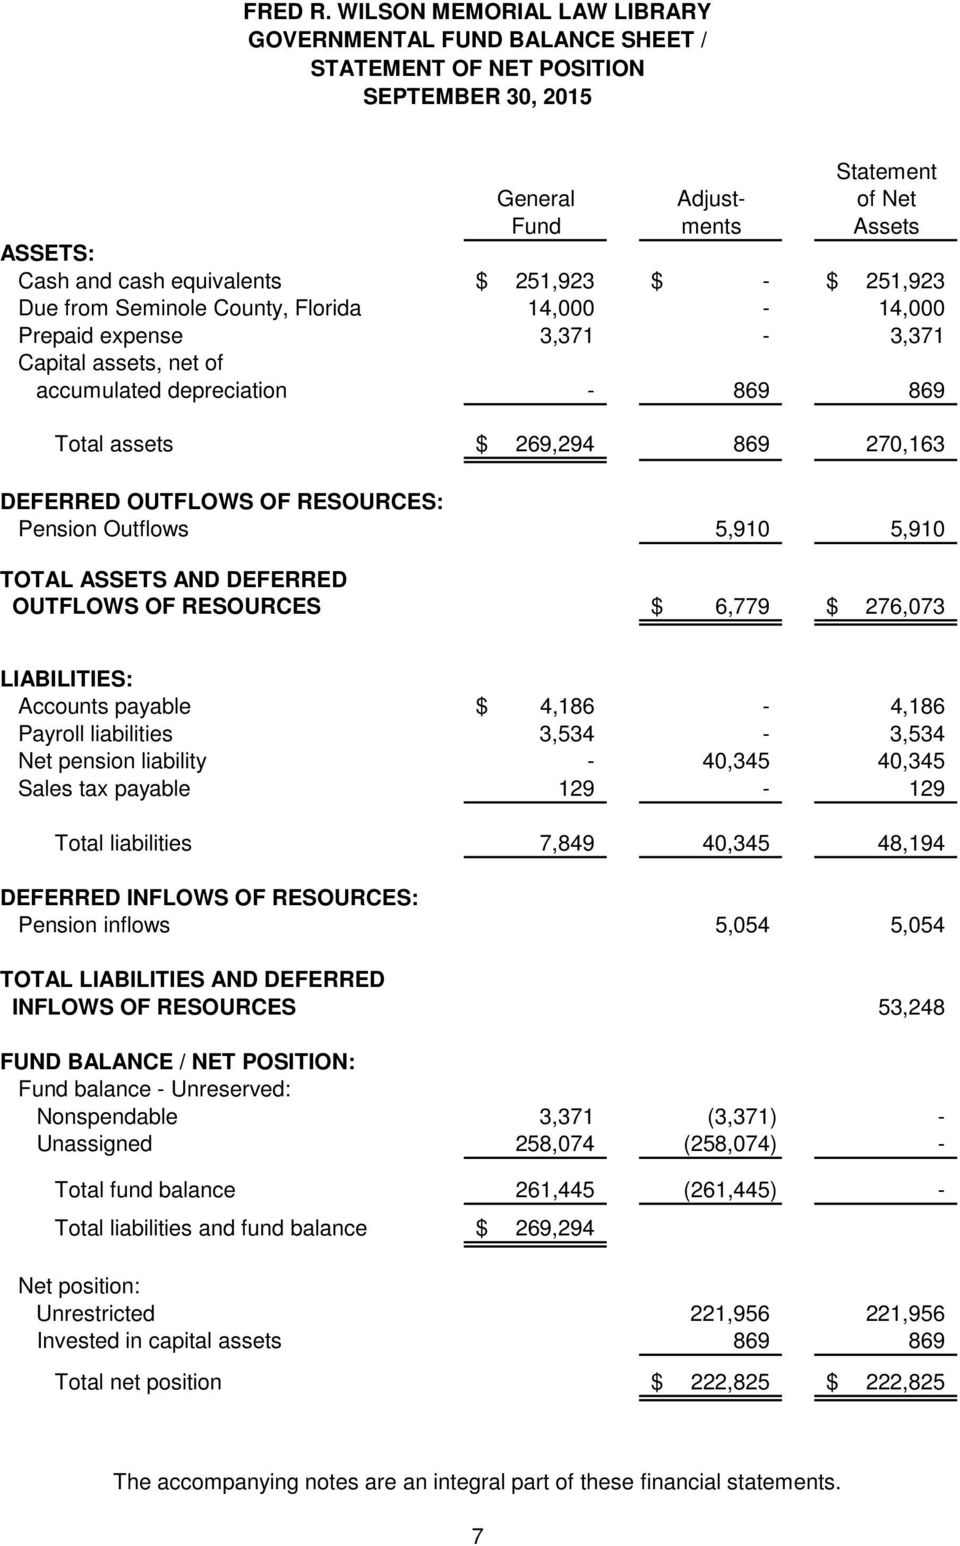 5,910 TOTAL ASSETS AND DEFERRED OUTFLOWS OF RESOURCES $ 6,779 $ 276,073 LIABILITIES: Accounts payable $ 4,186-4,186 Payroll liabilities 3,534-3,534 Net pension liability - 40,345 40,345 Sales tax